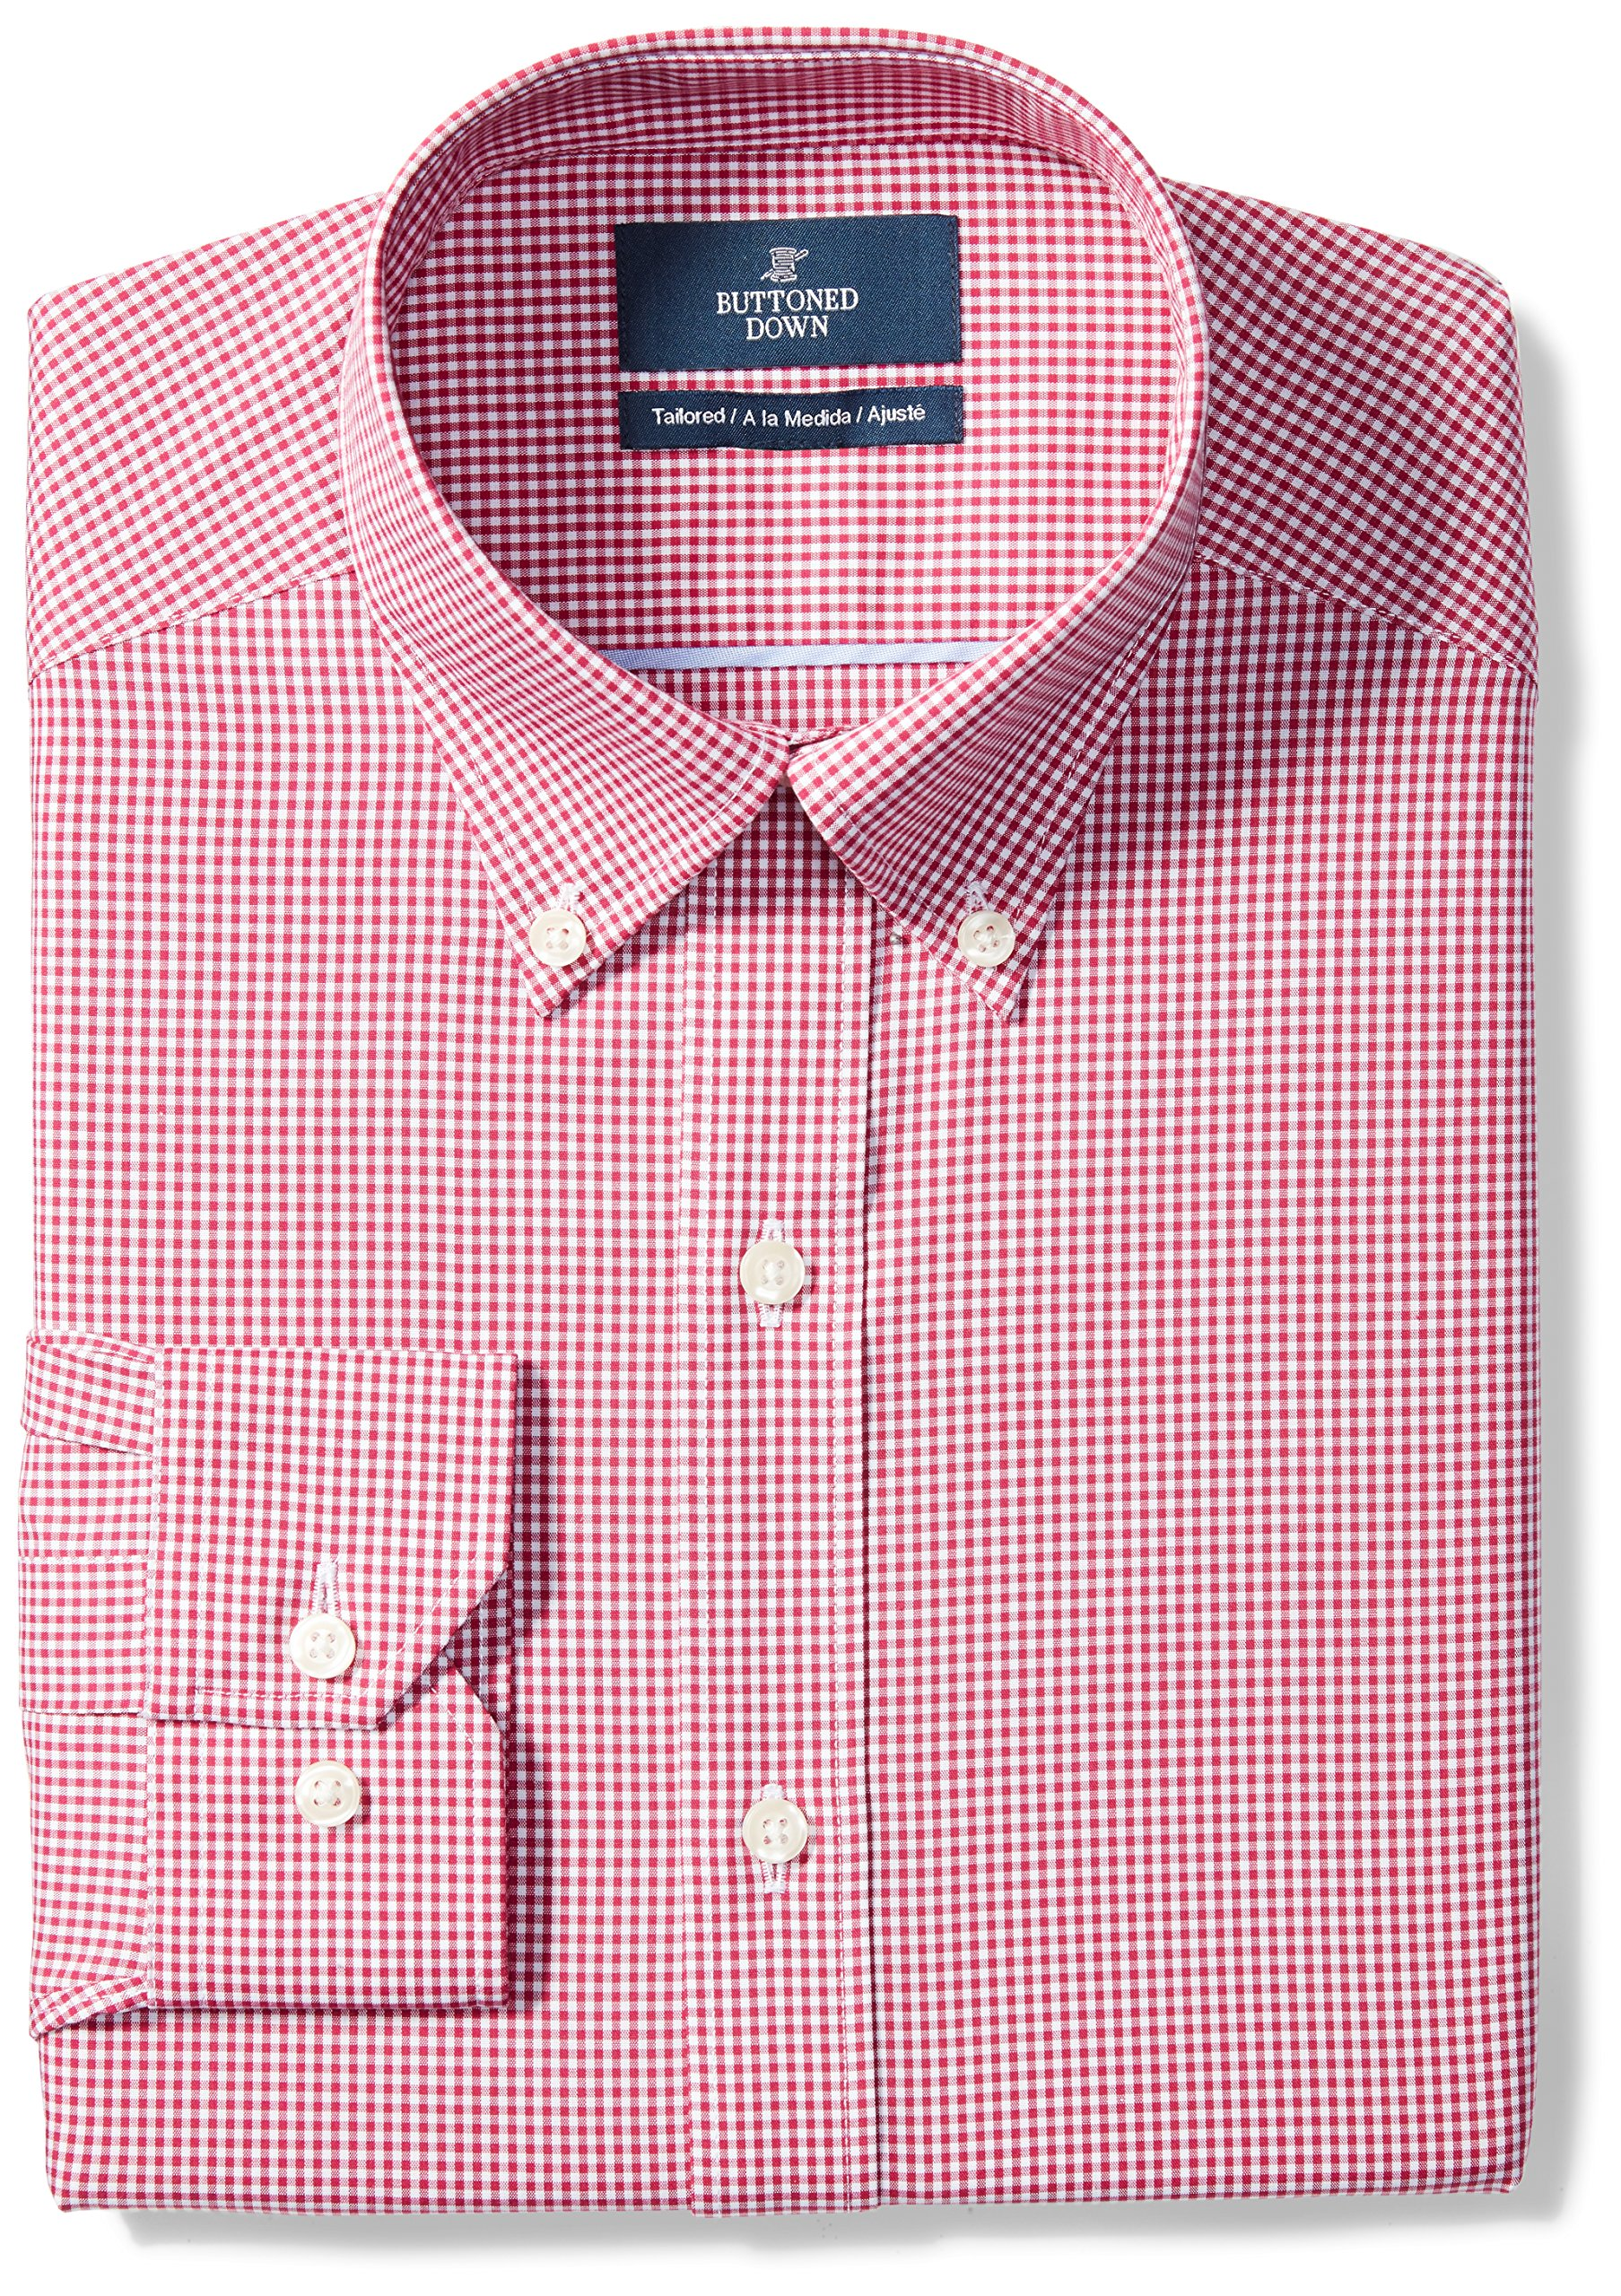 Buttoned Down Men's Tailored Fit Button-Collar Pattern Non-Iron Dress Shirt, Burgundy Gingham, 17.5'' Neck 36'' Sleeve